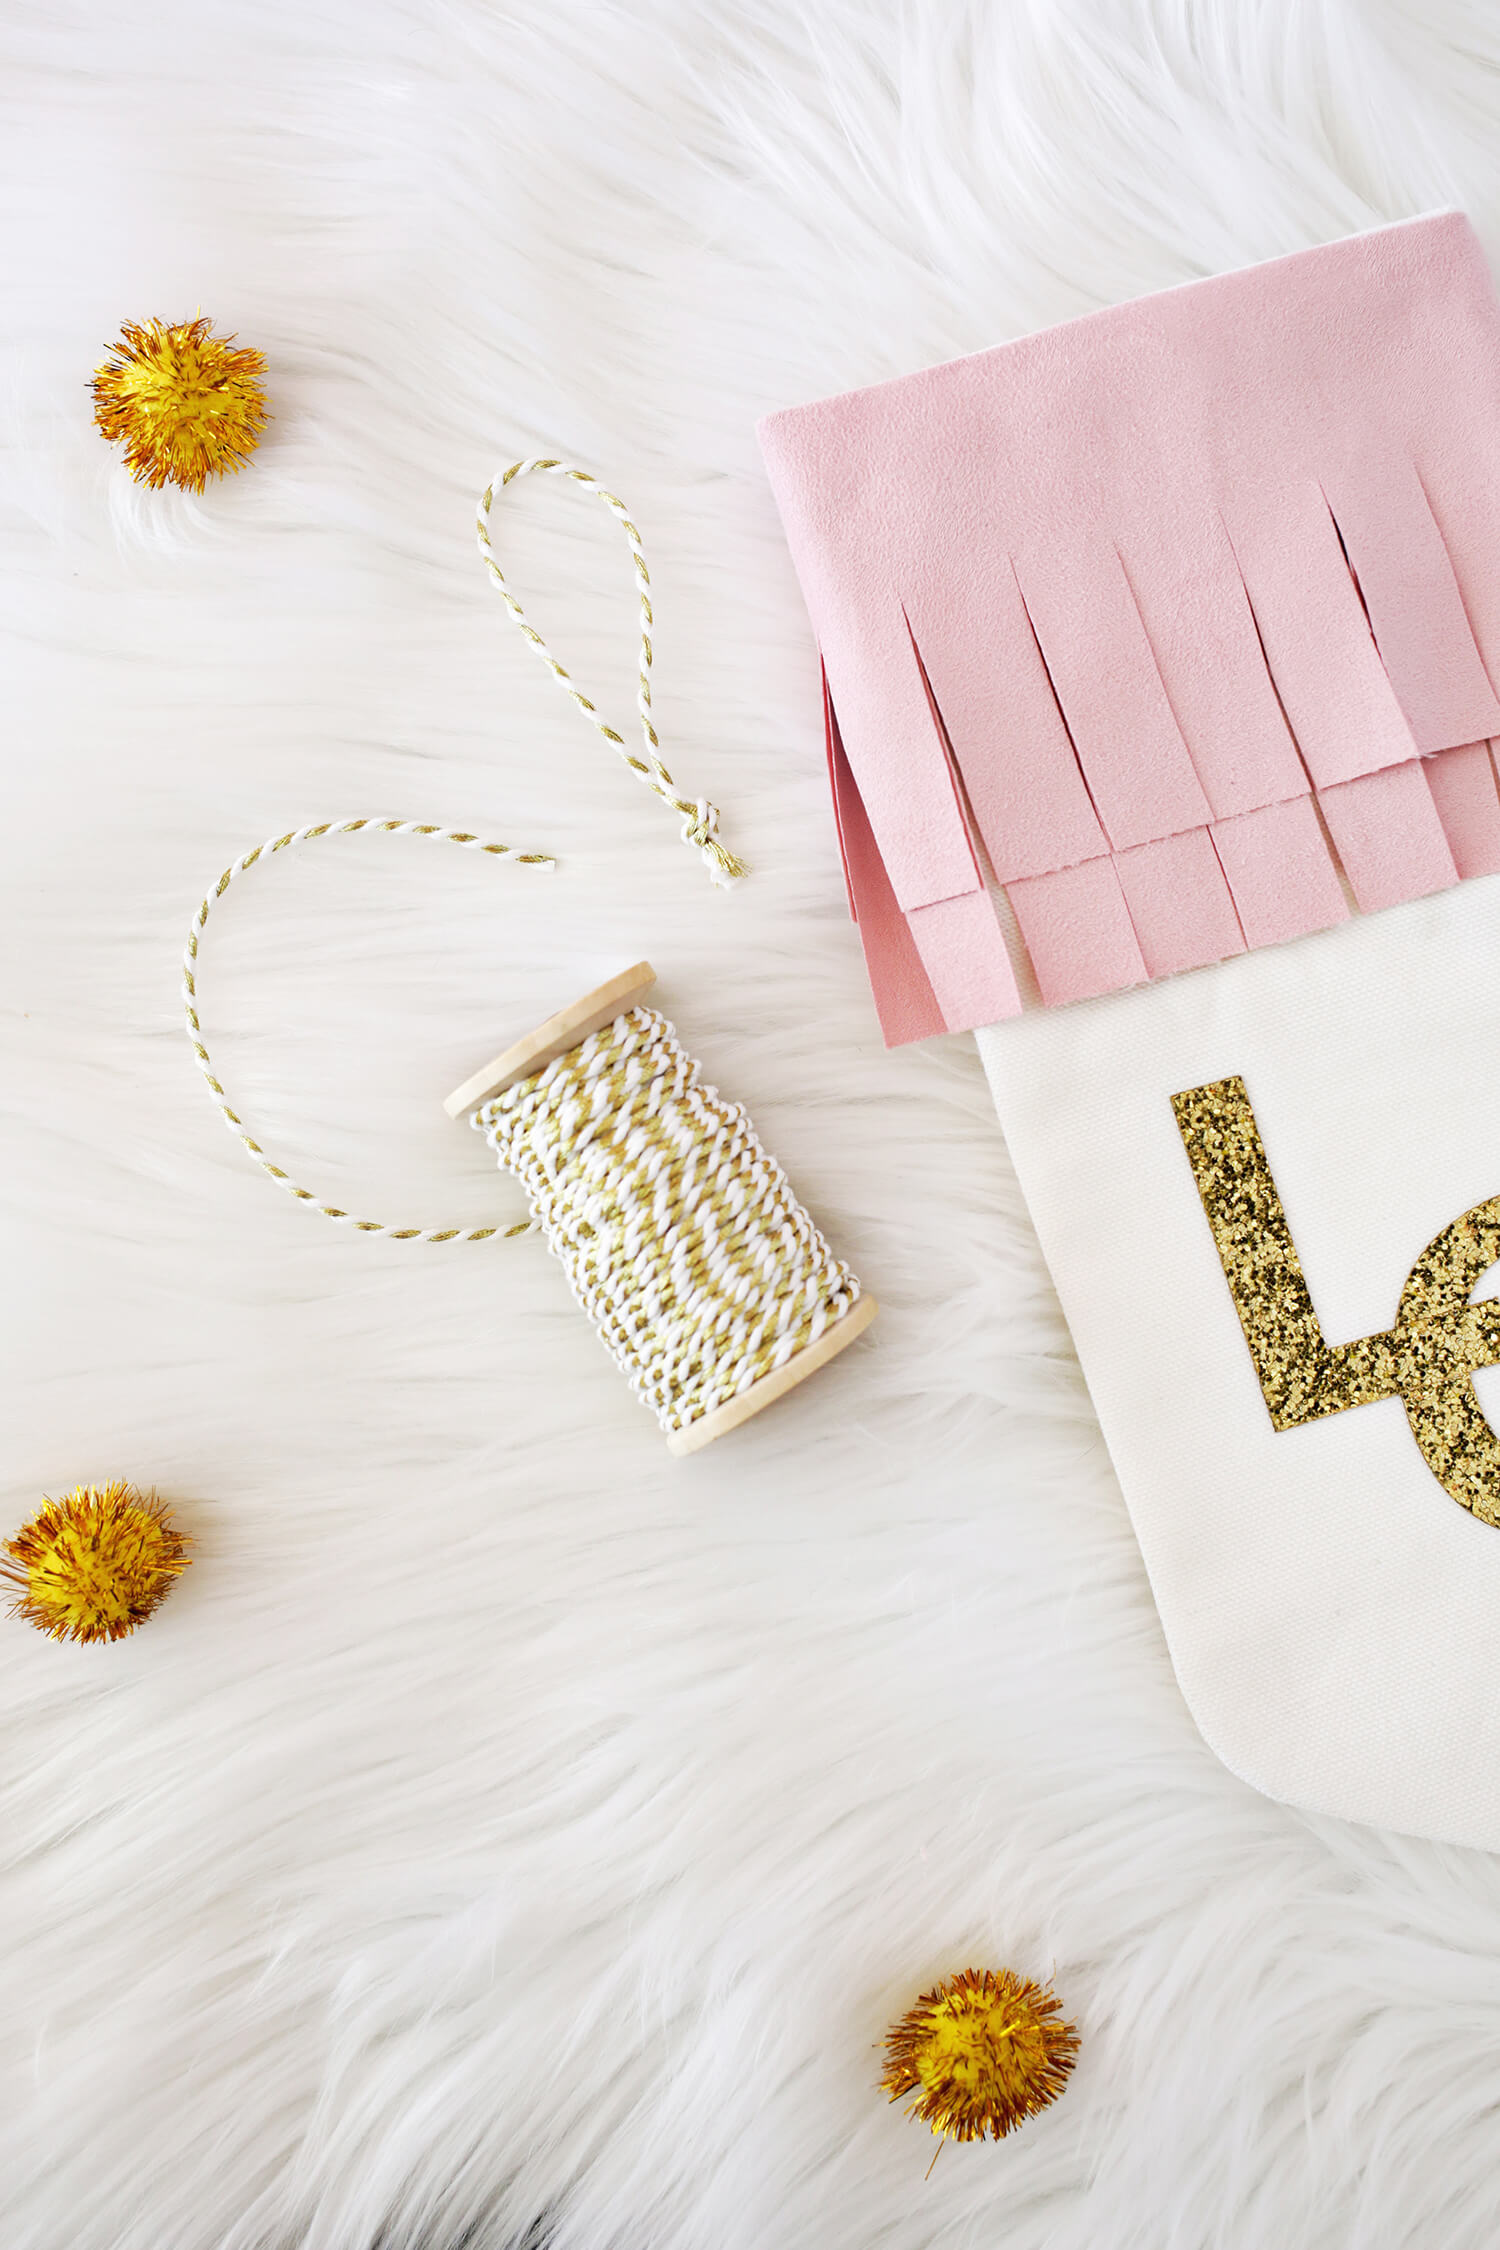 Faux-Suede-Fringe-Stocking-DIY-click-through-for-tutorial-3.jpg